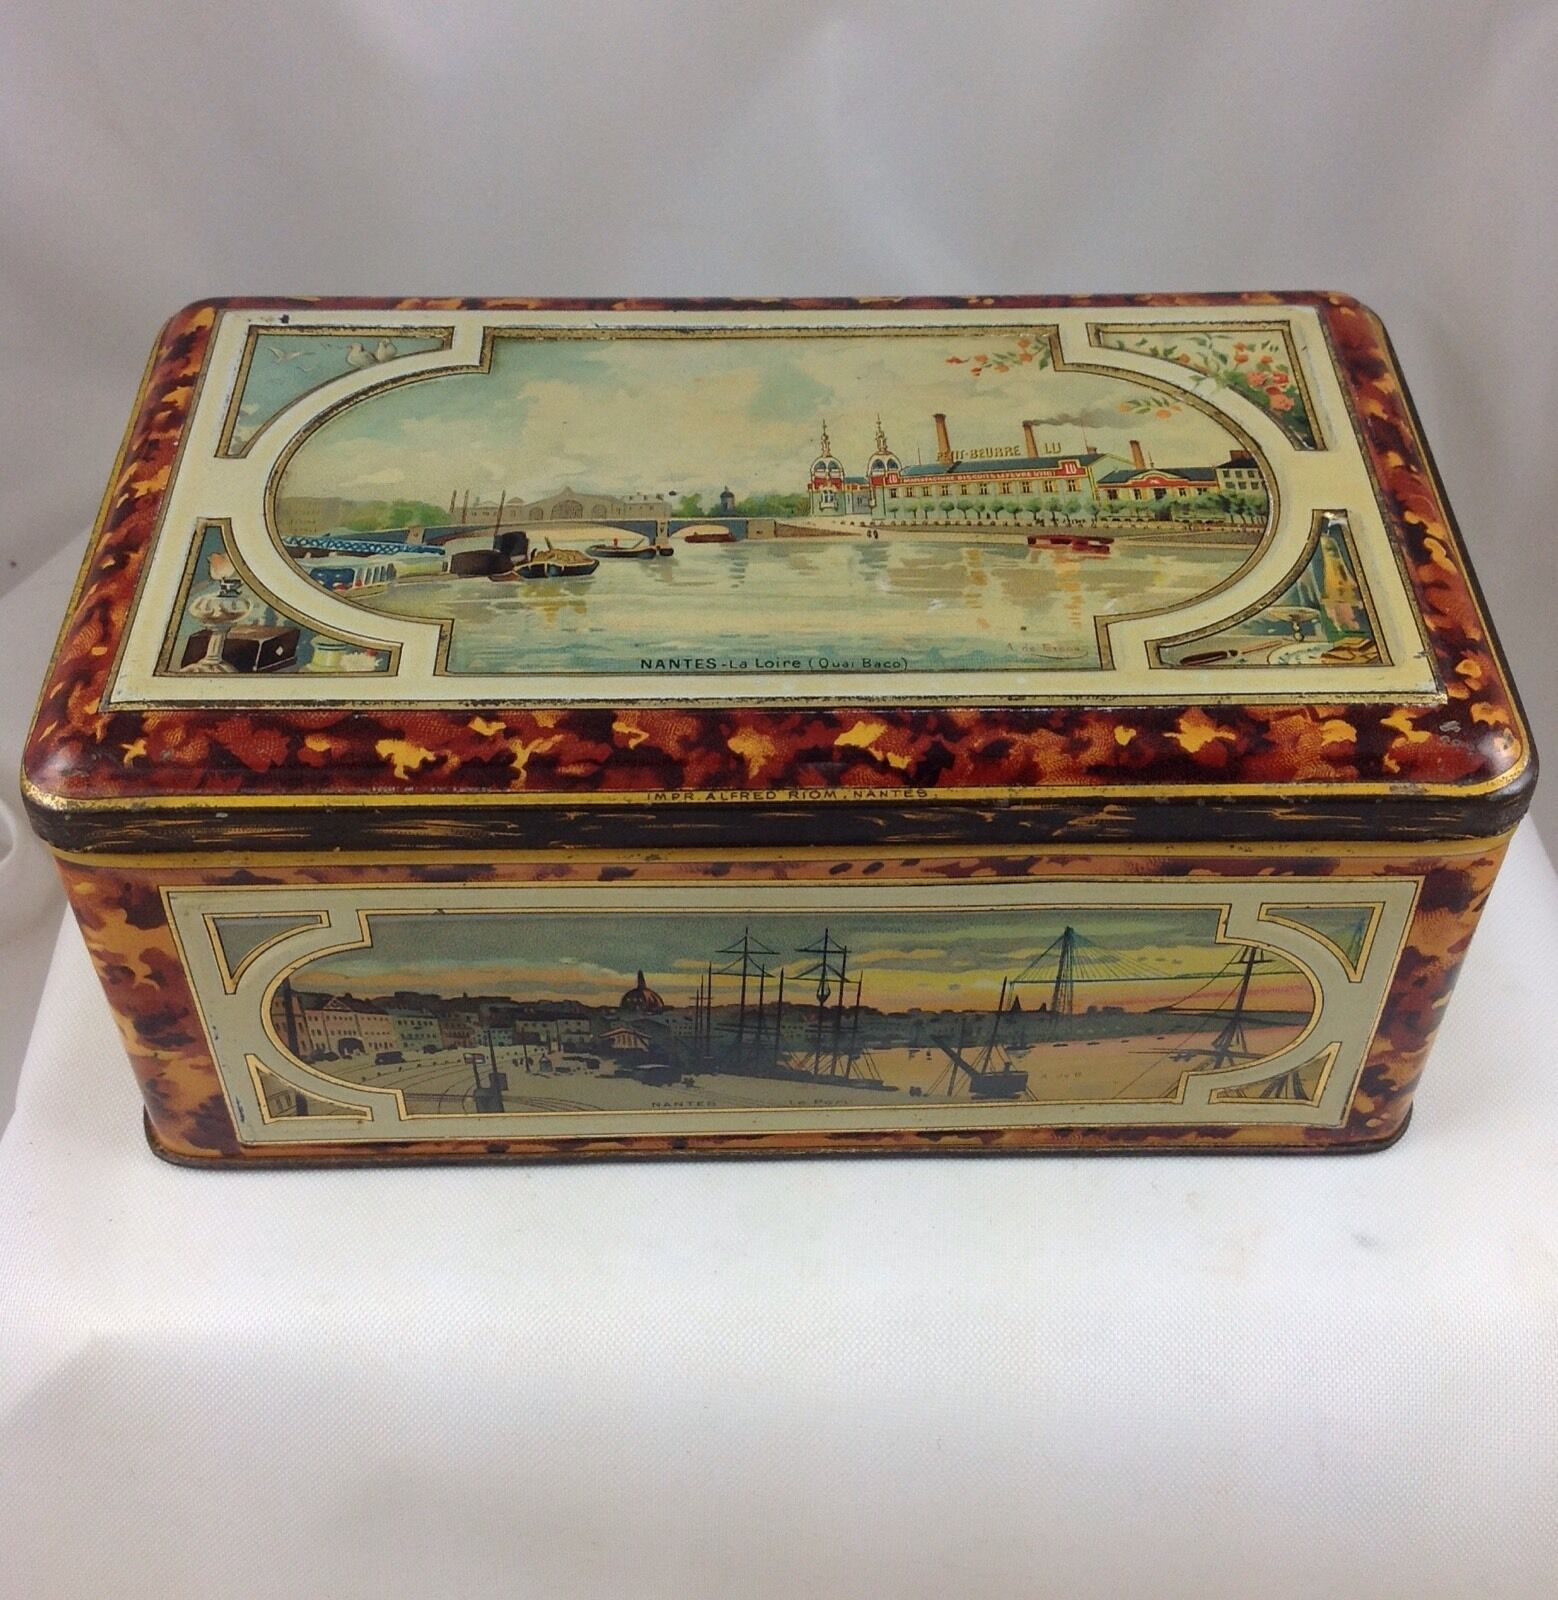 Biscuits Lefevre Utile Nantes Biscuit Tin France C1905 City Views Nantes Vintage Tea Tins Biscuit Tin